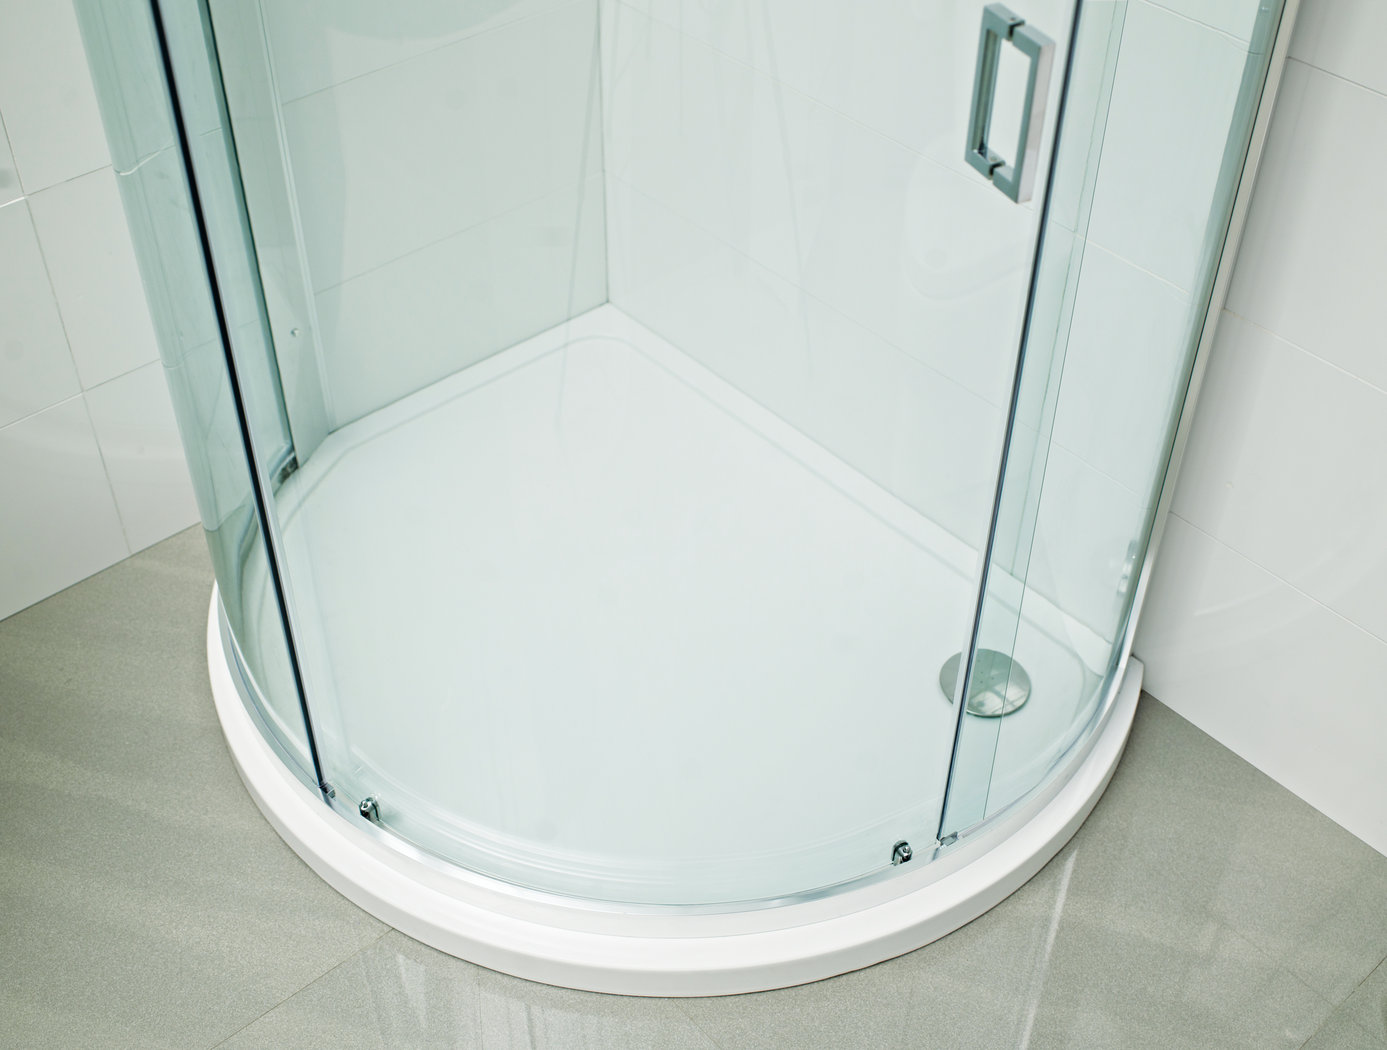 Buy Online Roman Lumin8 bow quadrant tray left shower tray DQT3L